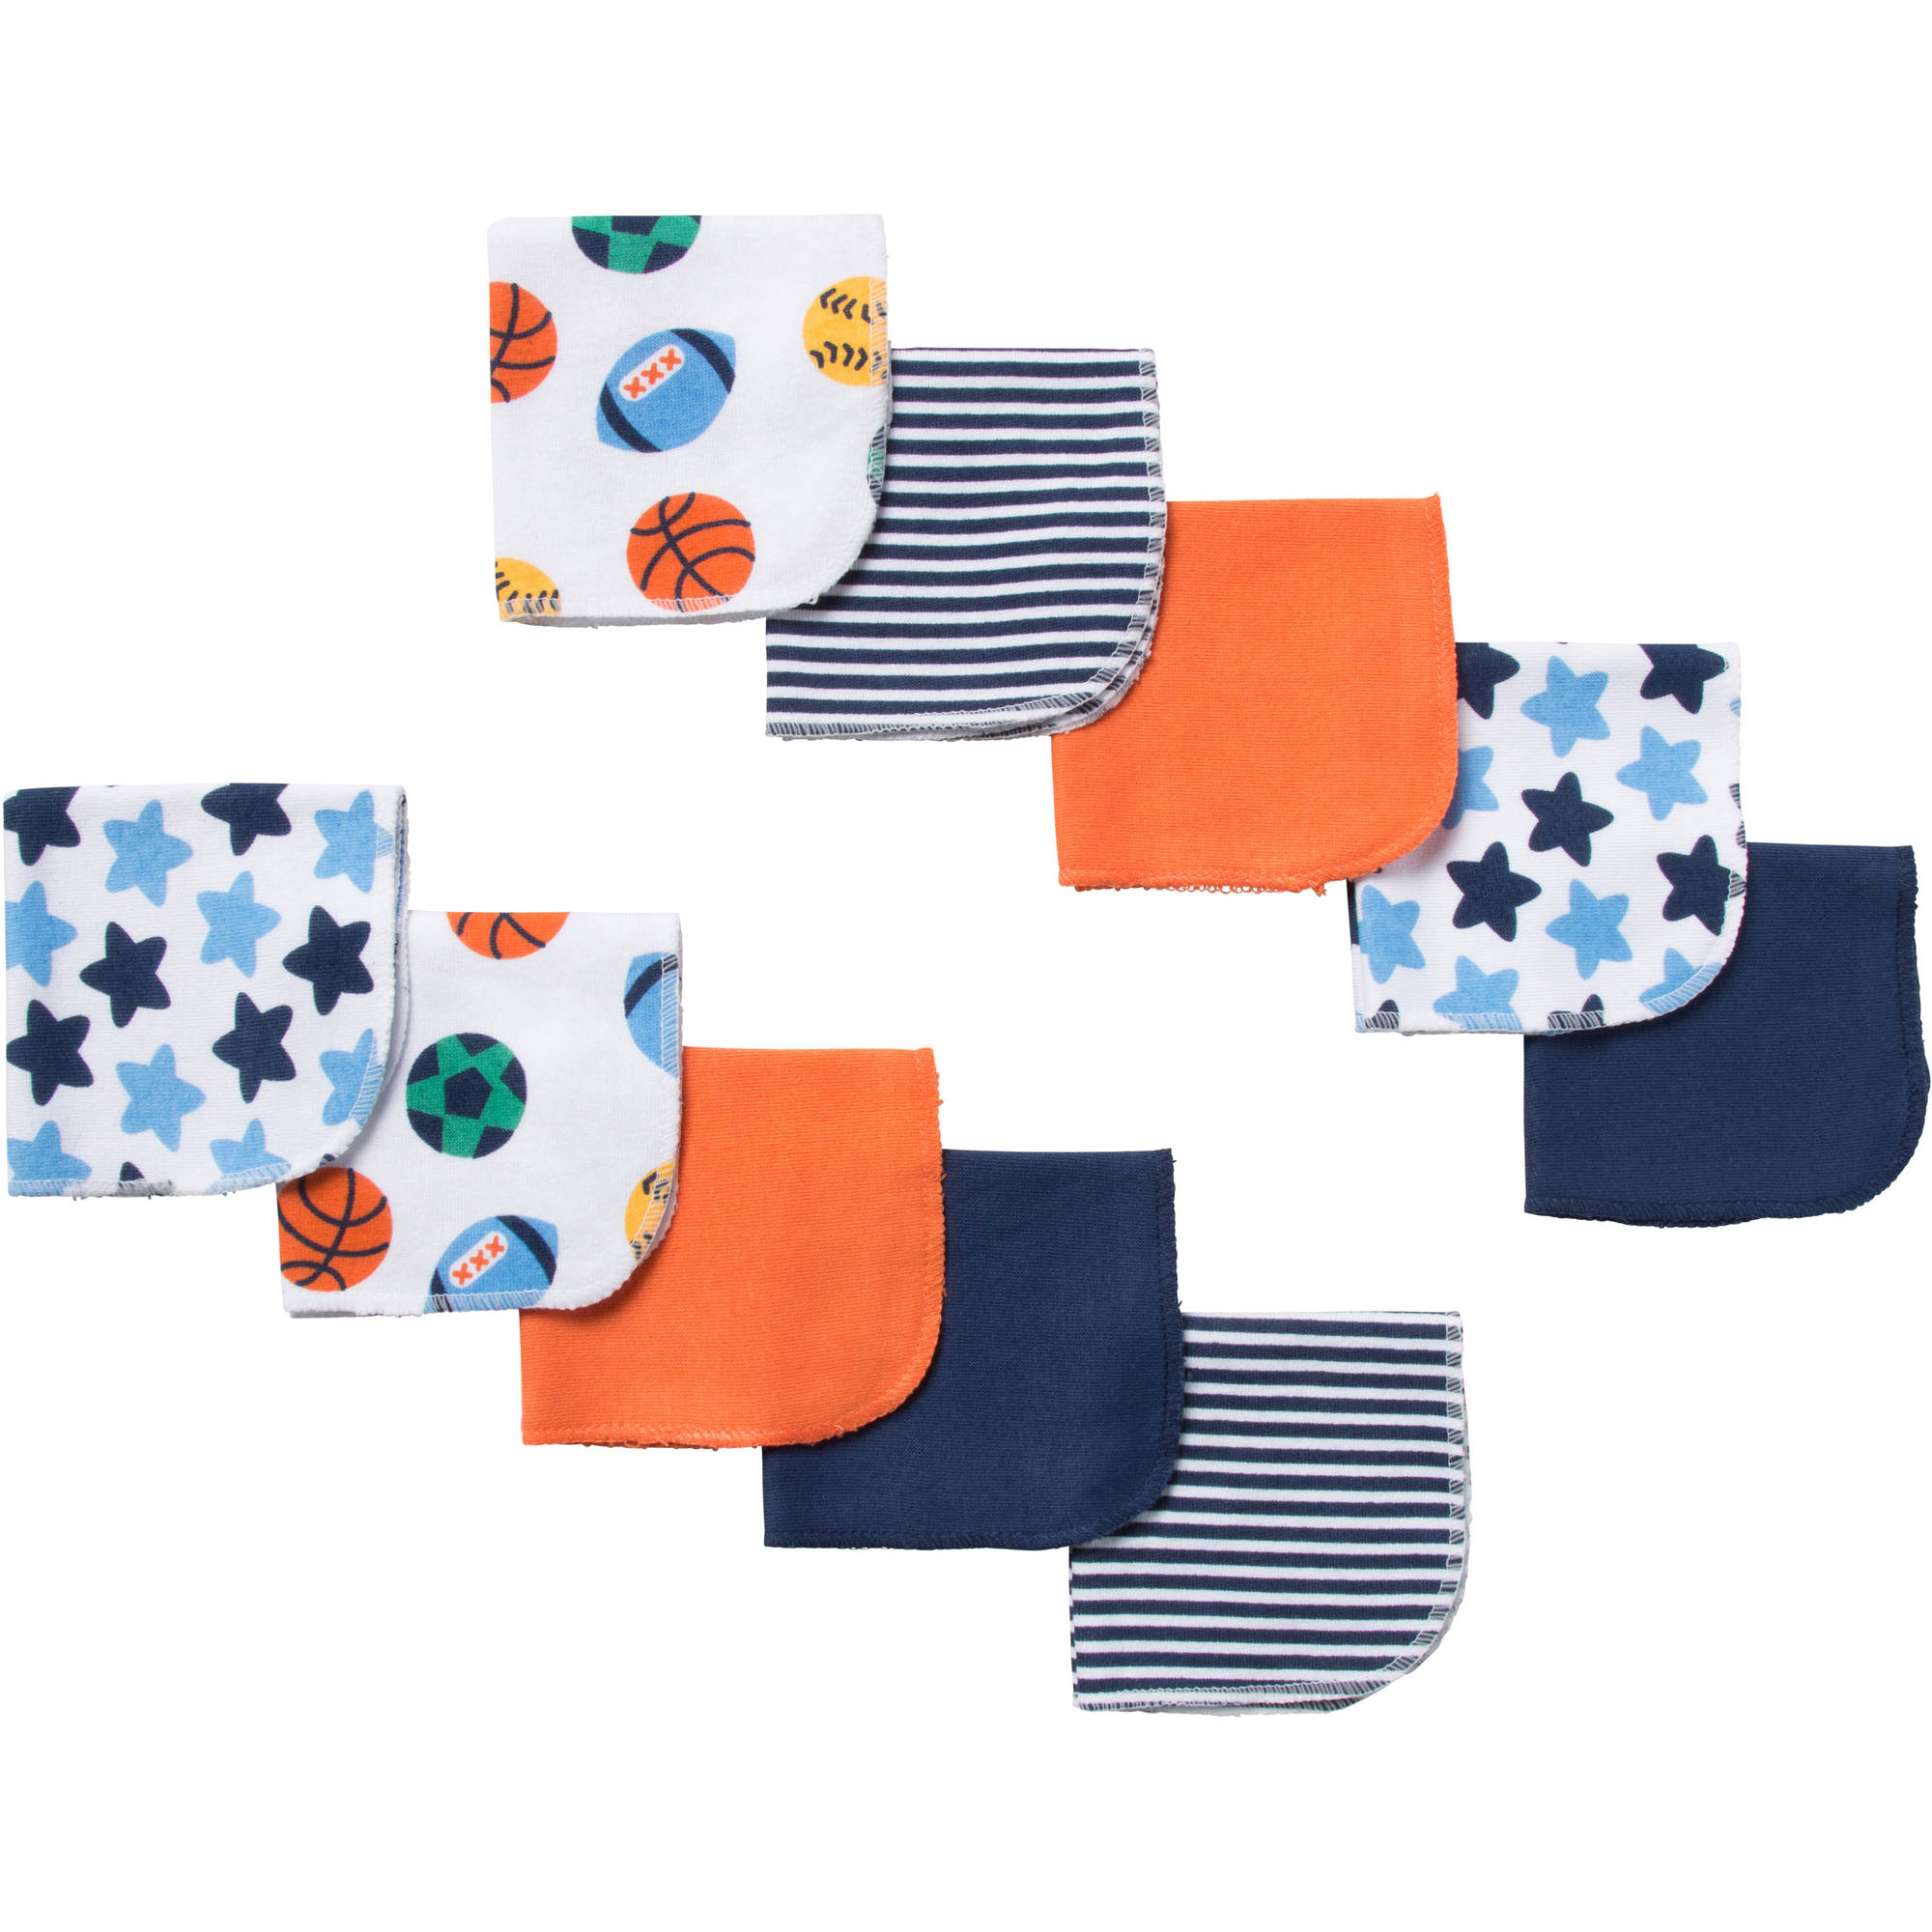 Gerber Newborn Baby Boy Terry Printed Sport Washcloths - 10 pack